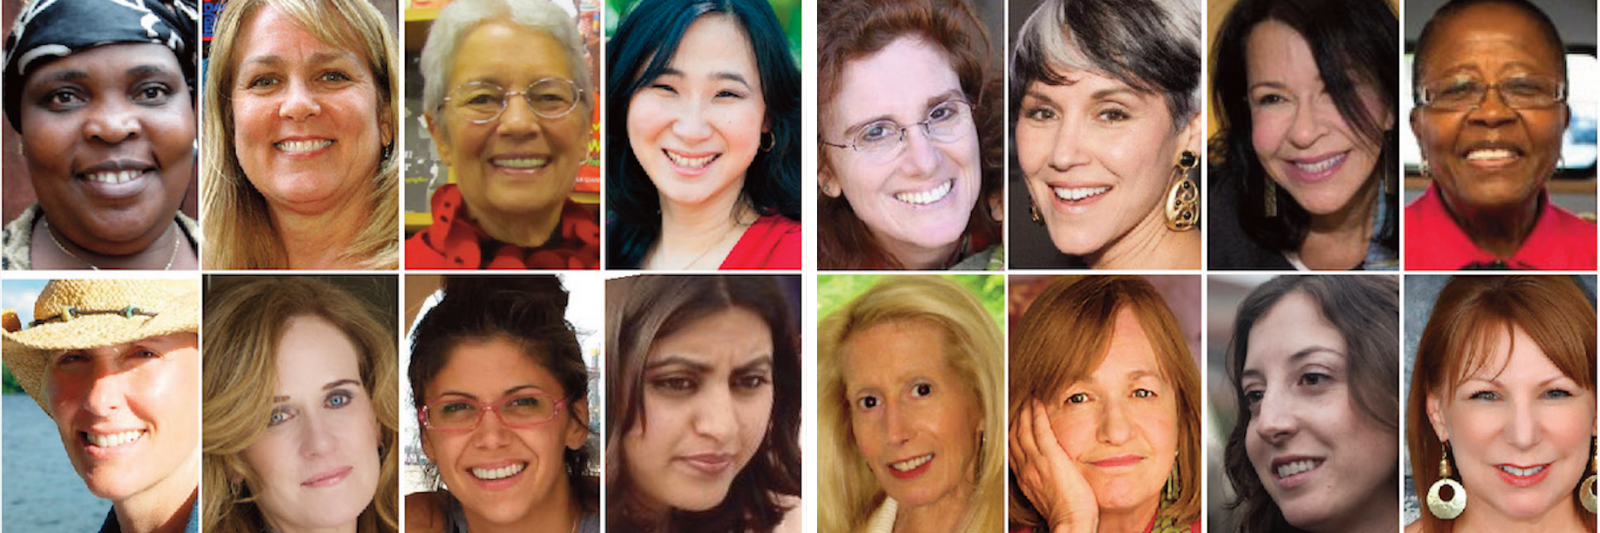 Get Updates from The Women's Eye with background photo featuring some of the women featured in 20 Women Changemakers with co-editors Pamela Burke and Patricia Caso of The Women's Eye